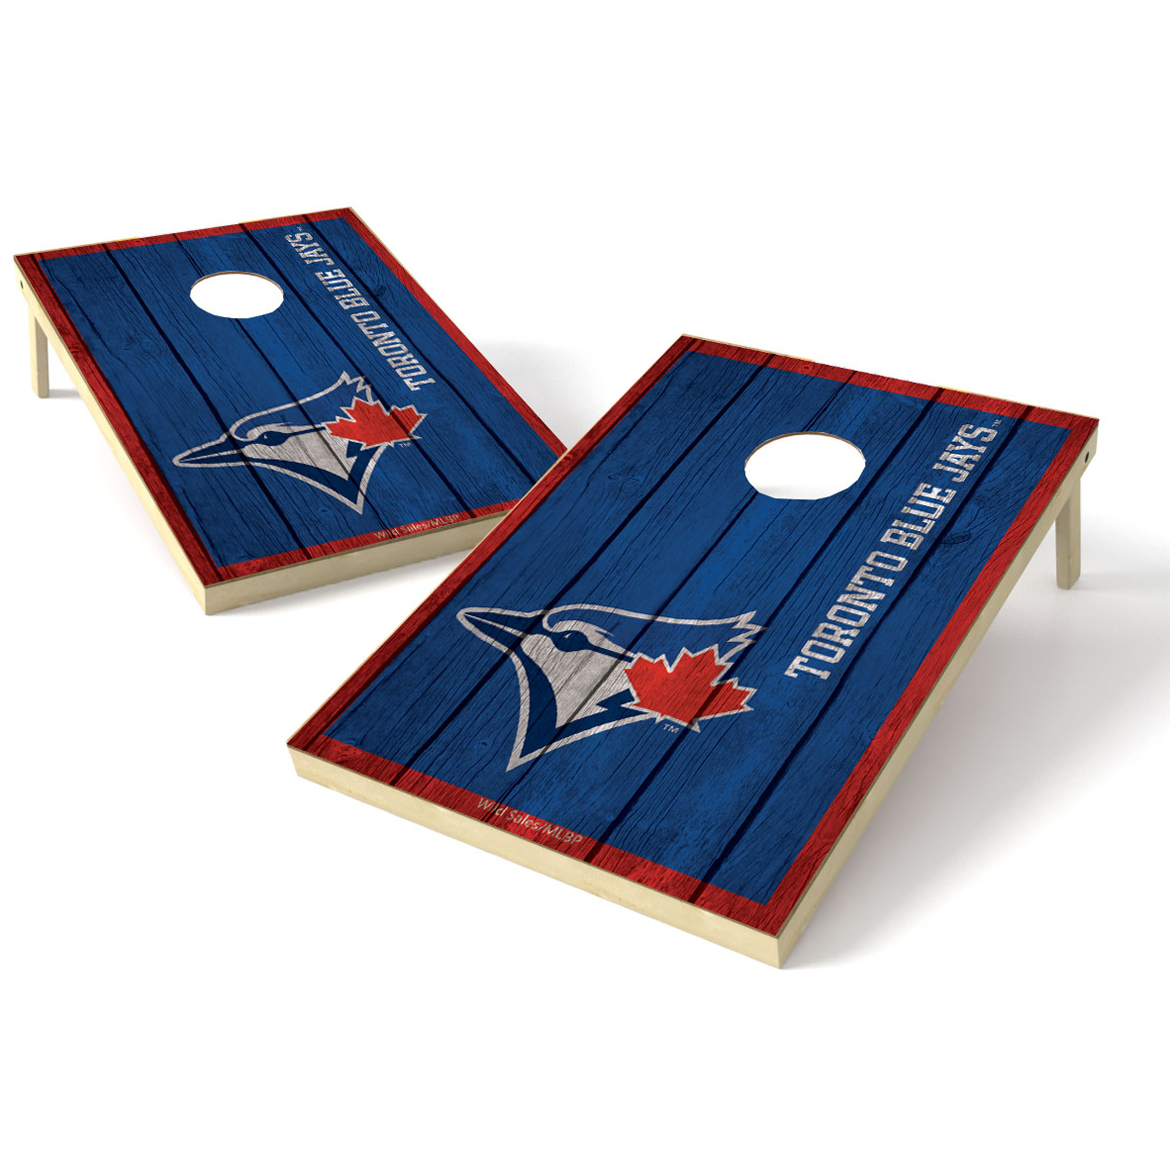 2X3 Shield Game MLB Big Vintage Toronto Blue Jays